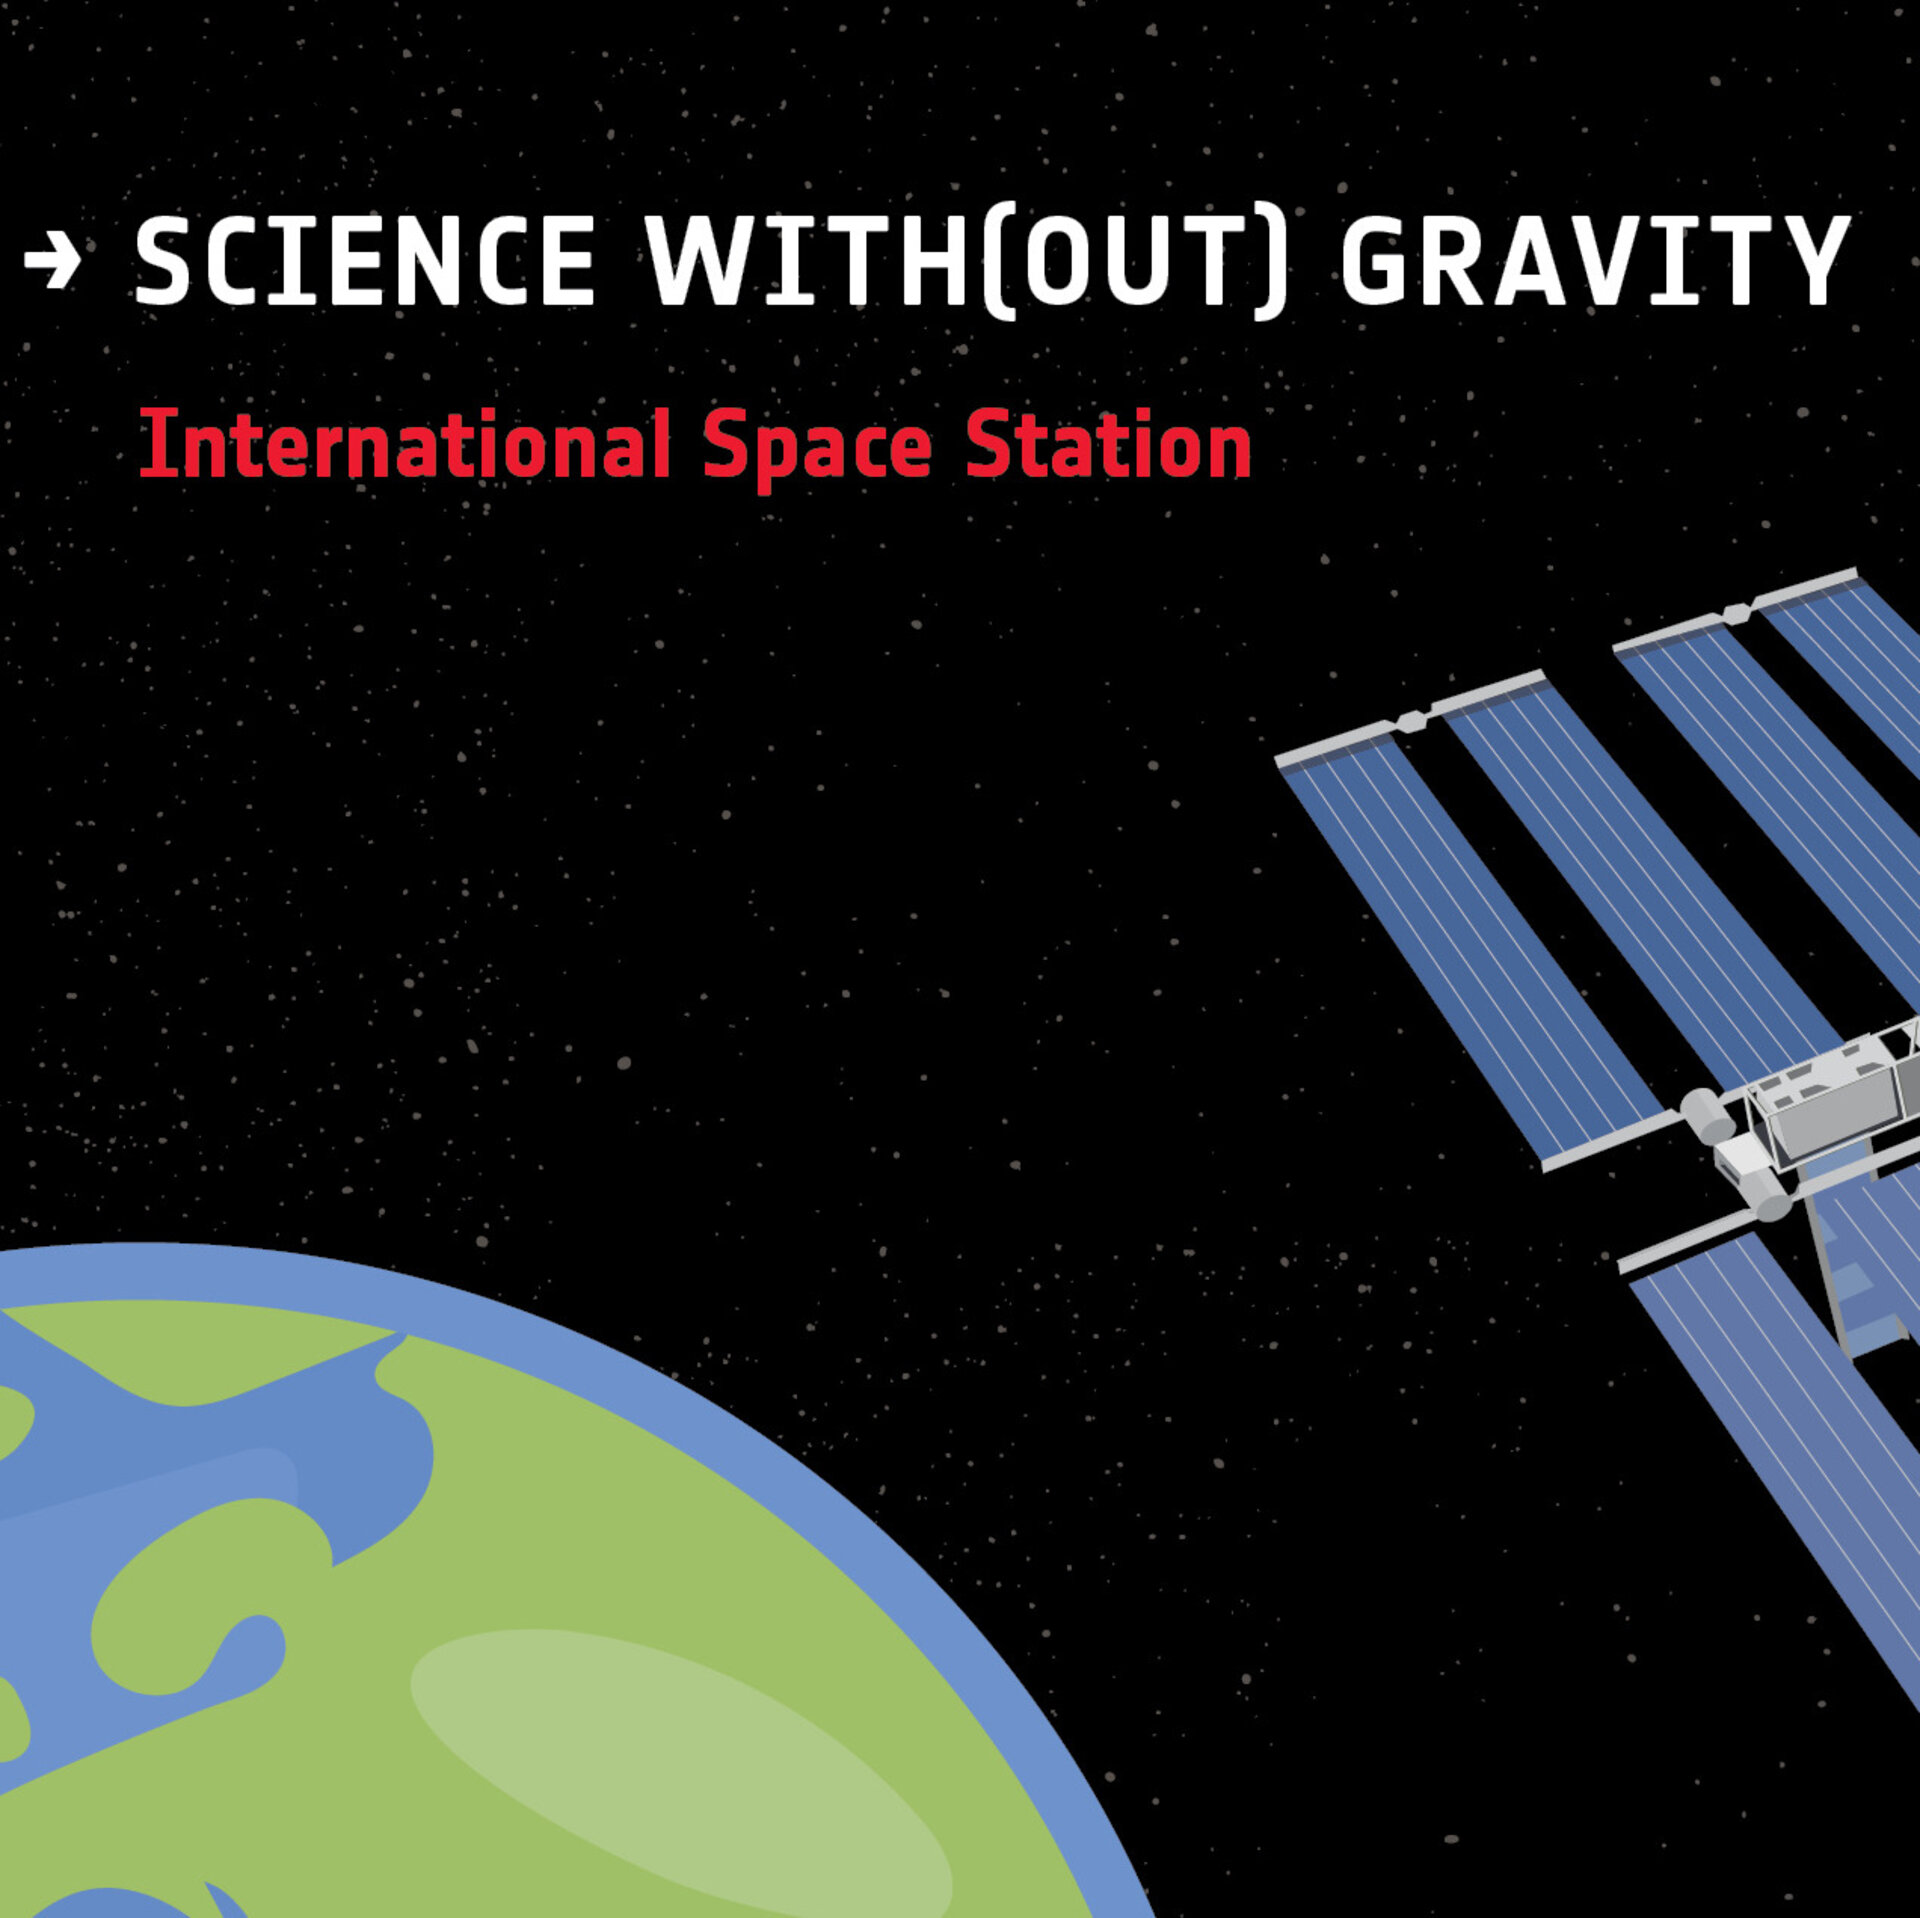 Science with(out) gravity  – International Space Station highlight version